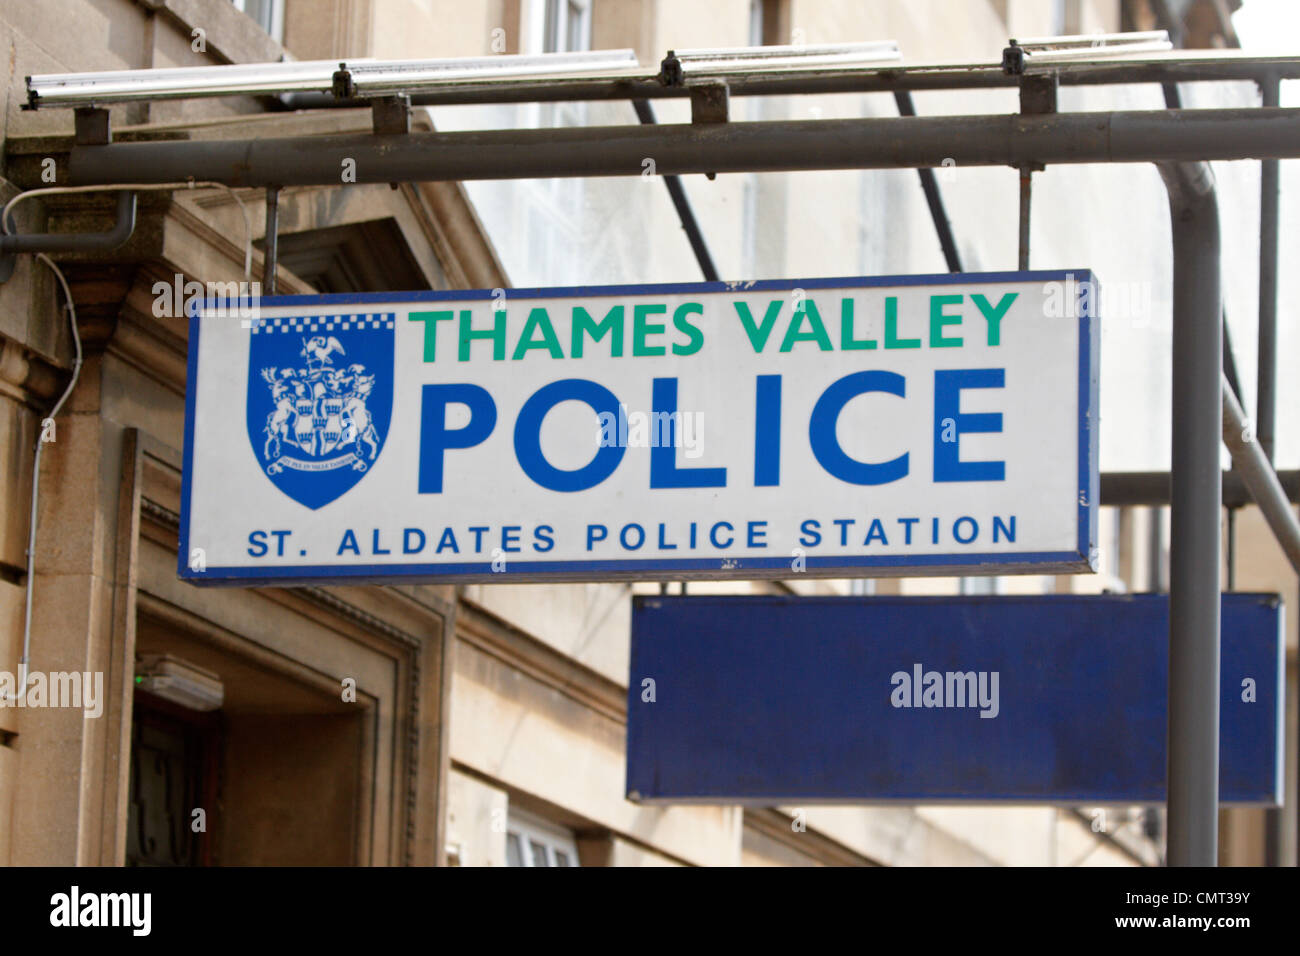 A general view of the Thames Valley Police station on St Aldates in central Oxford - Stock Image